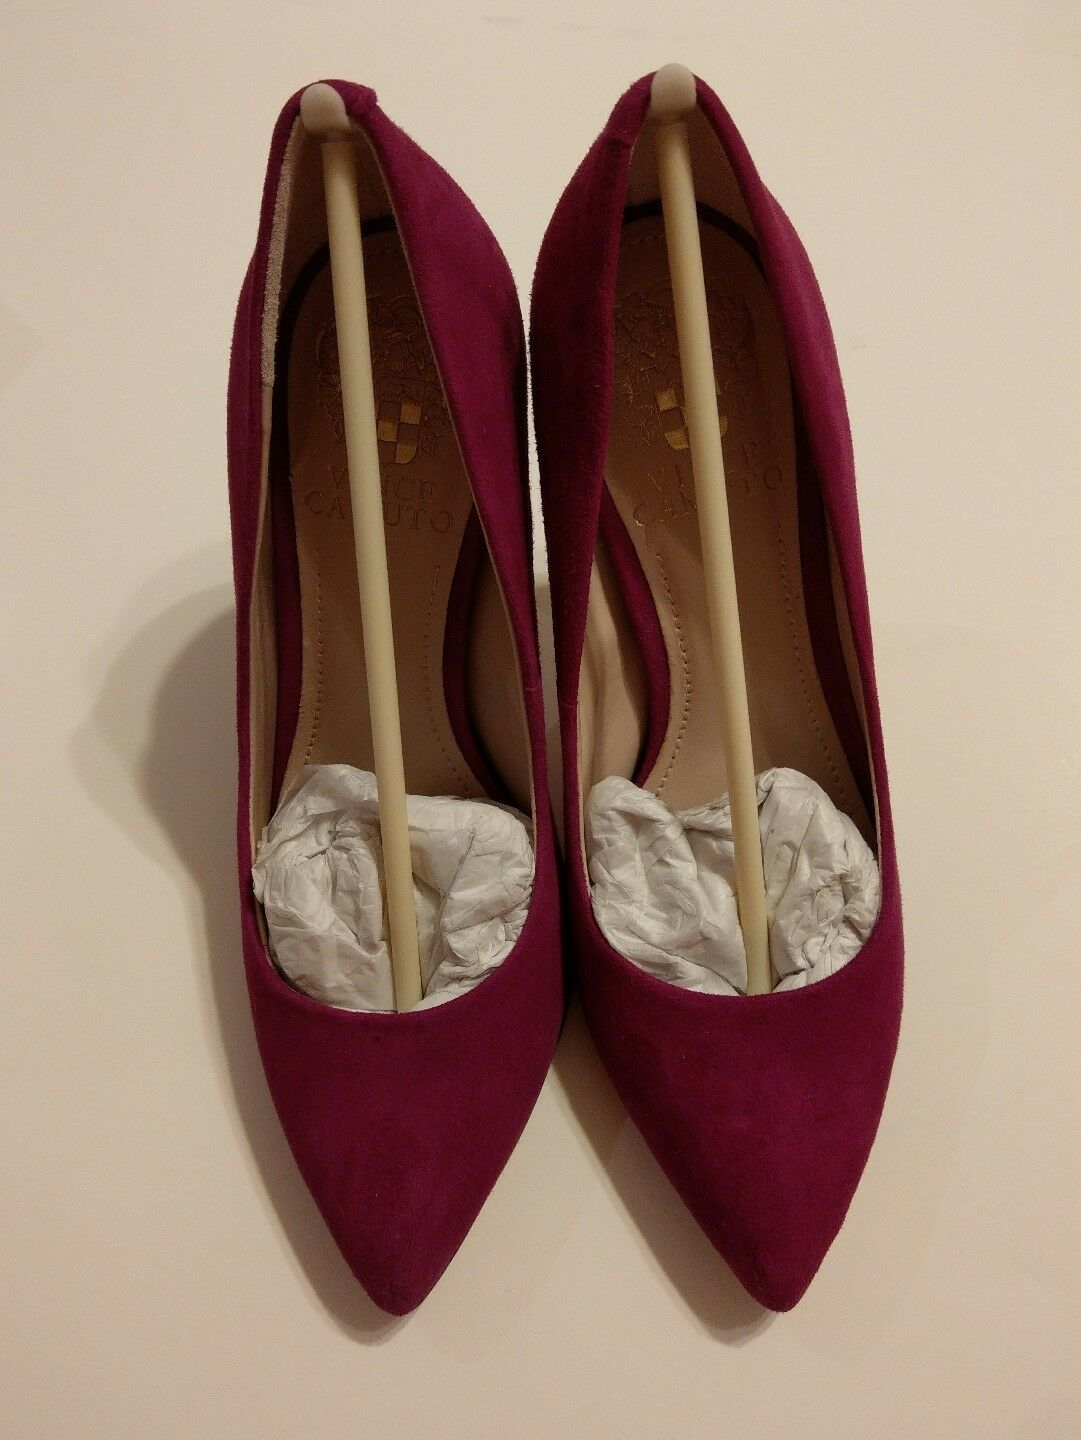 Vince Camuto Suede Pointy /5.5 Pump size 35.5 /5.5 Pointy perfect condition a2ae7c